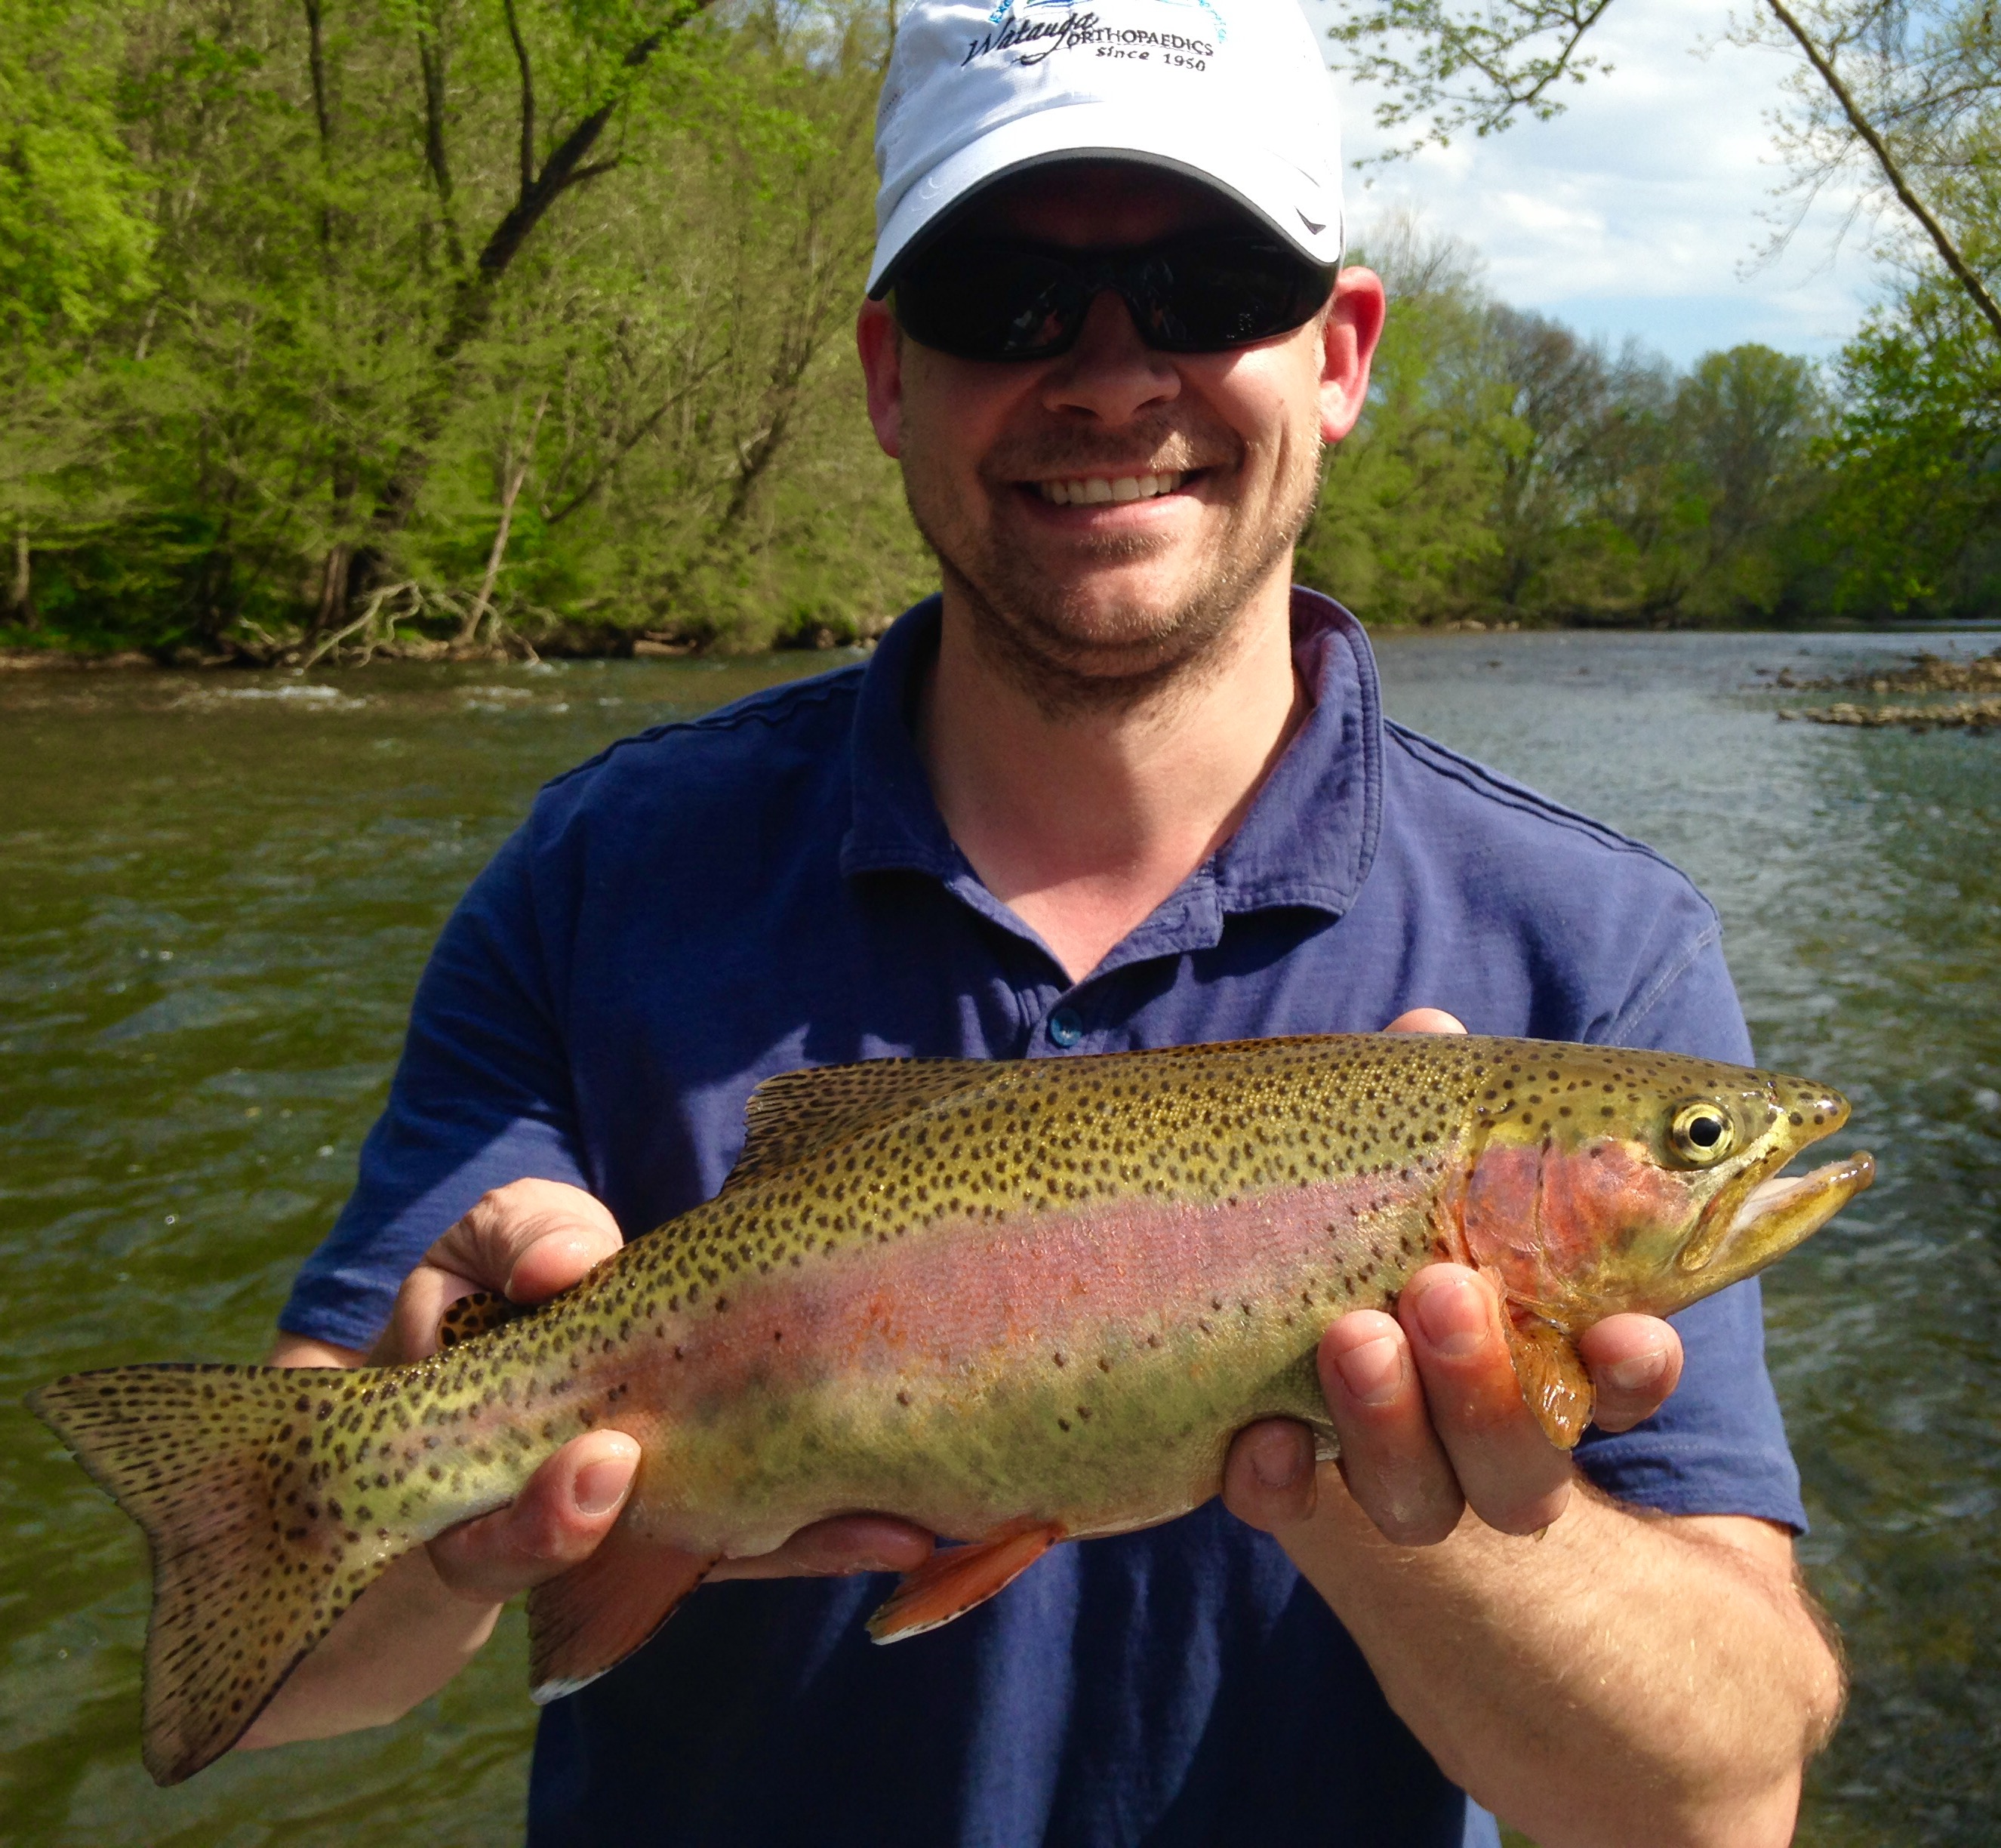 Football shaped Watauga river rainbow trout caught on a caddis